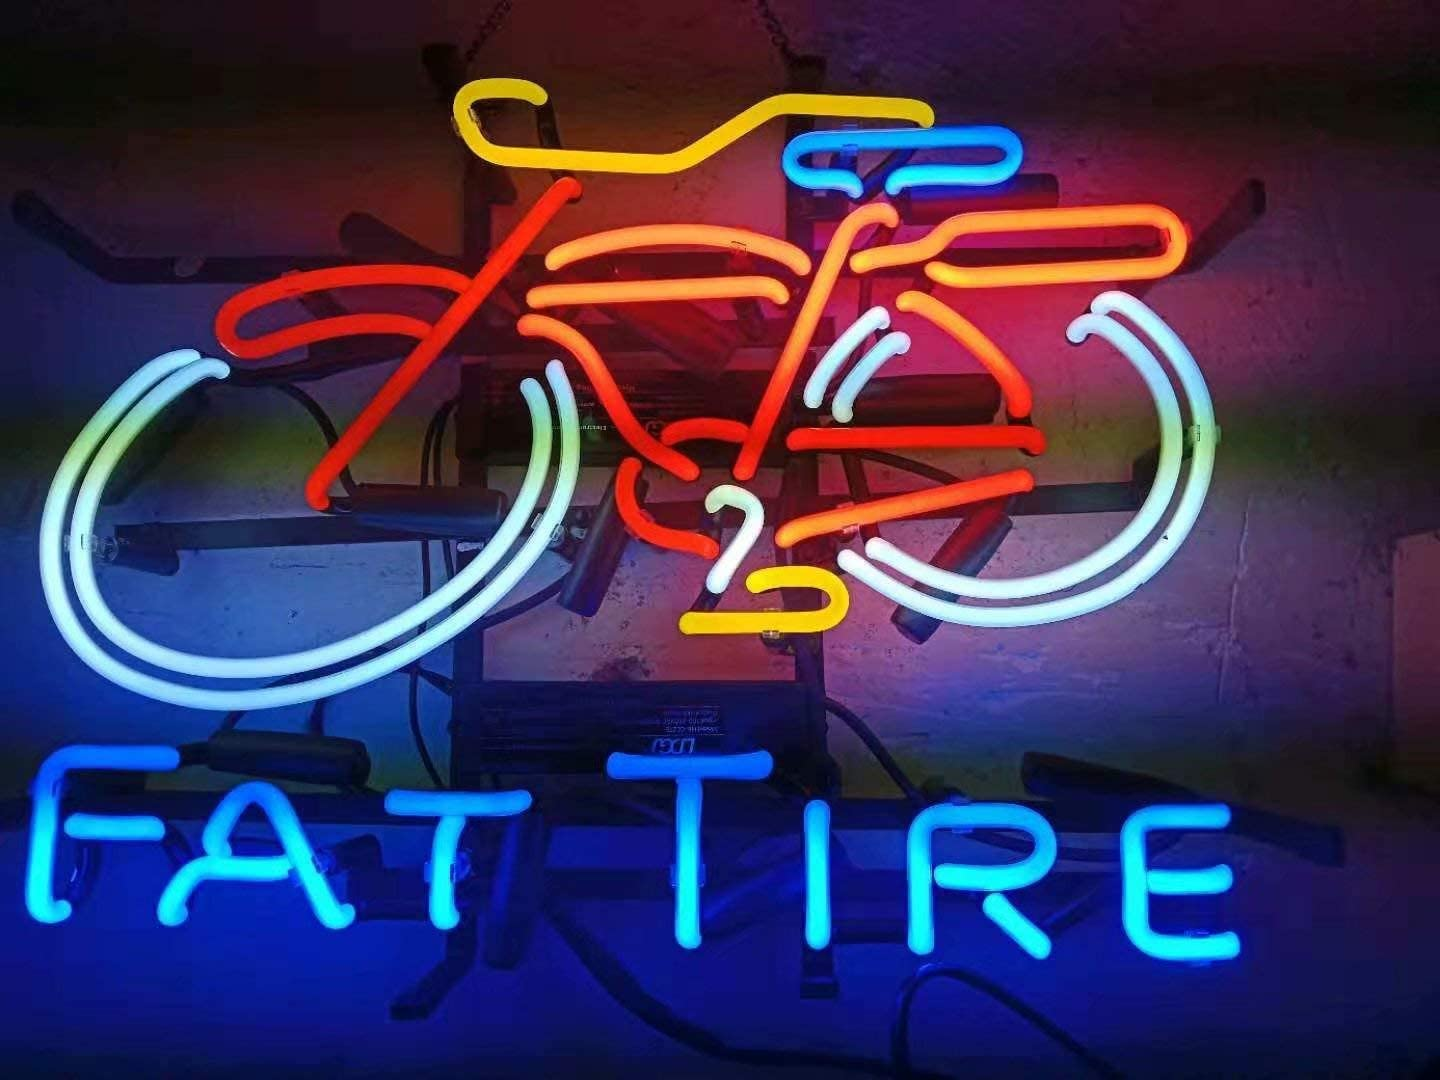 LDGJ Neon Signs for Wall Decor Handmade Sign Home Fat Tire Custom Beer Bar Pub Recreation Room Lights Windows Glass Party